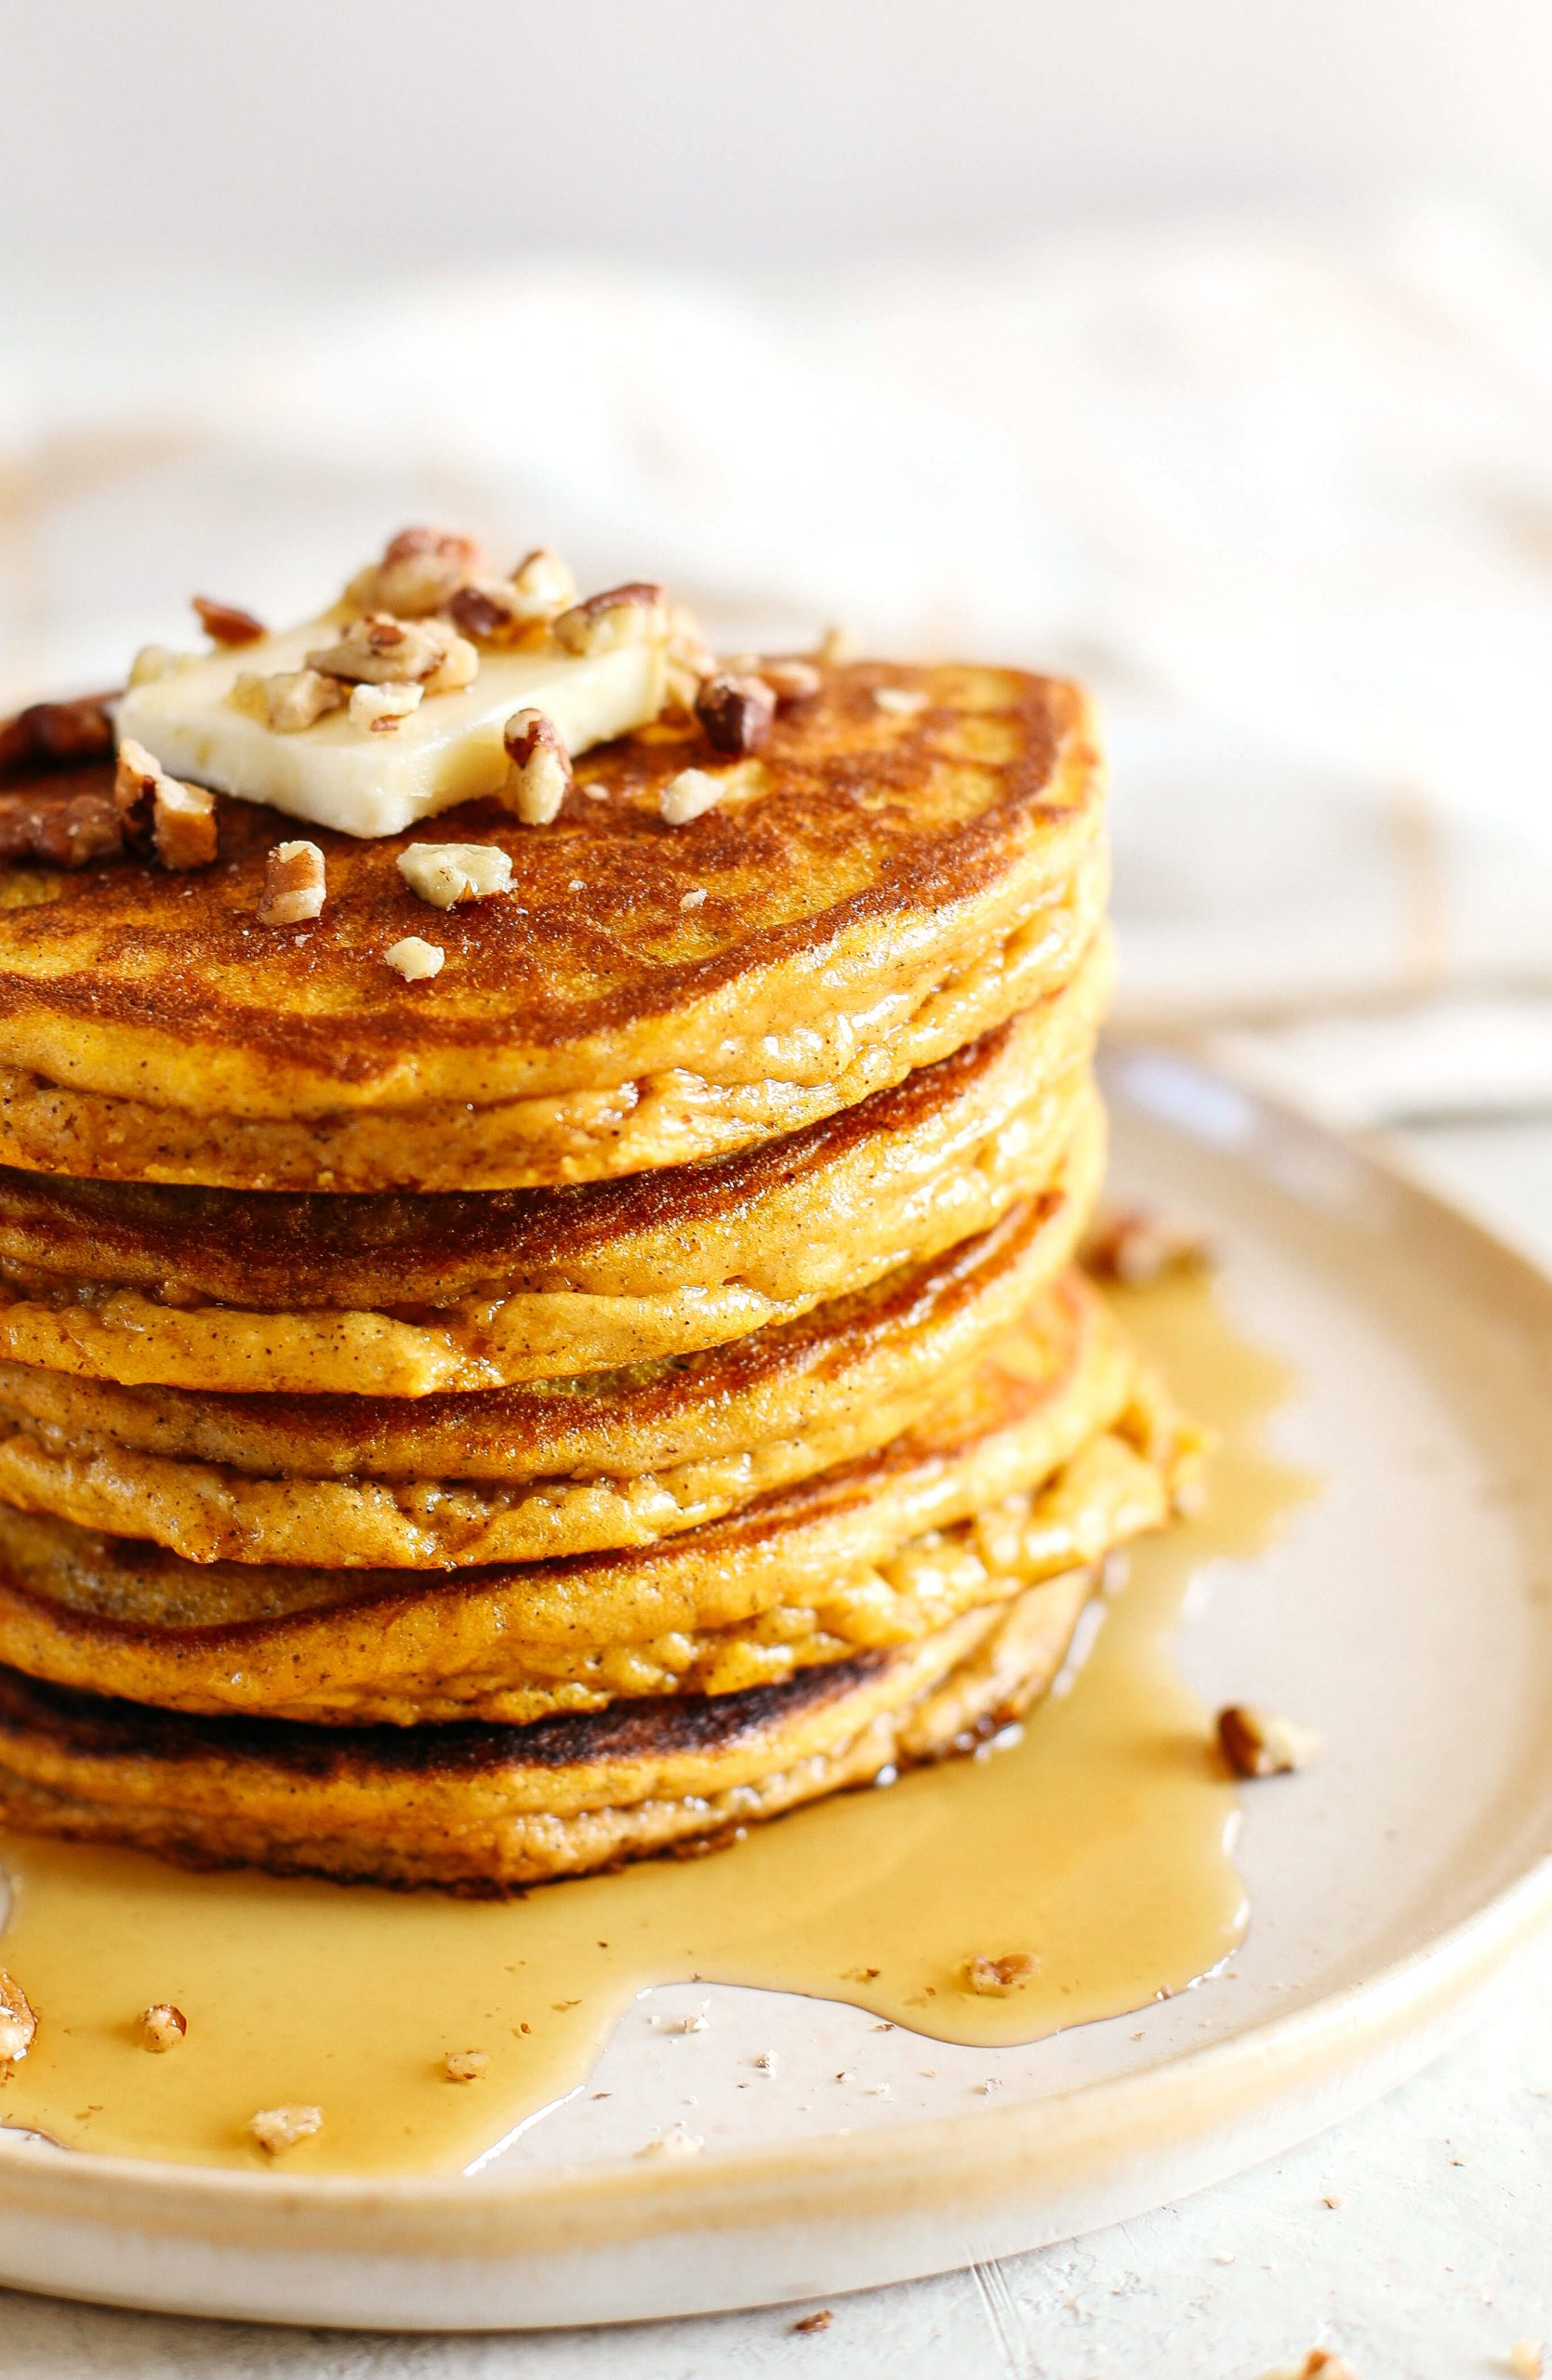 Start your morning with these fluffy pumpkin pancakes that are gluten-free, dairy-free and paleo with zero refined sugars made with almond flour for an easy delicious fall breakfast!